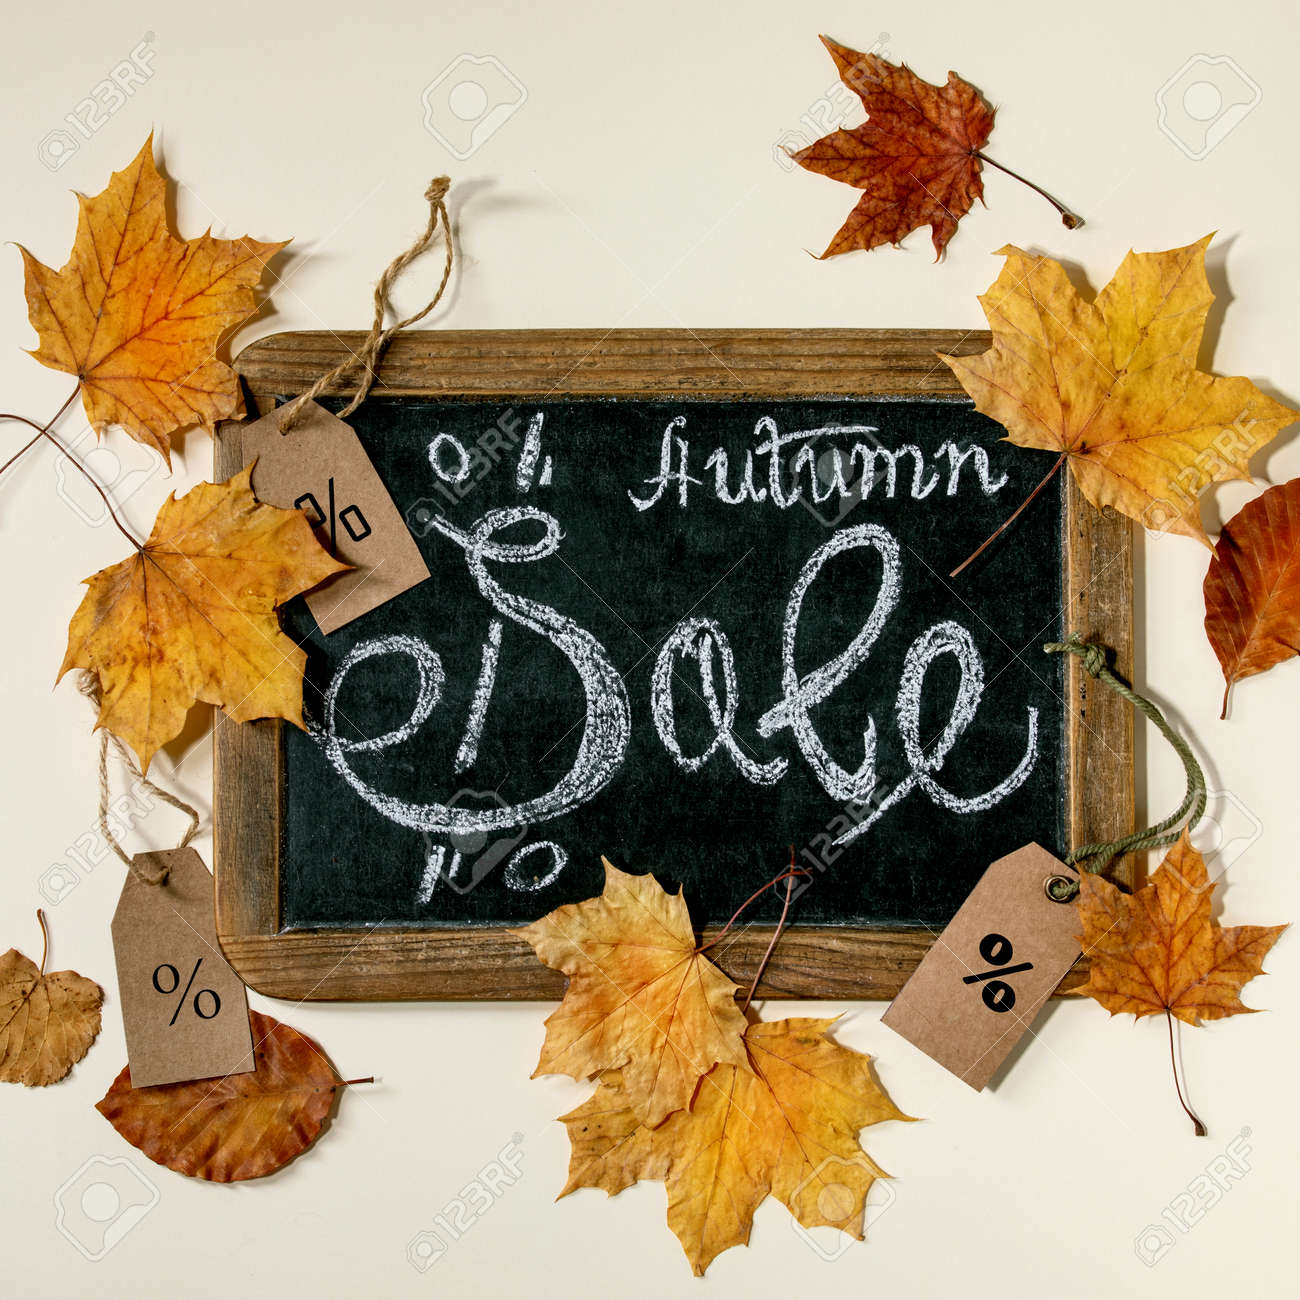 Autumn sale concept. Vintage chalkboard with hand written lettering Sale, labels with percents, yellow autumn leaves over beige background. Flat lay. Square - 173276707